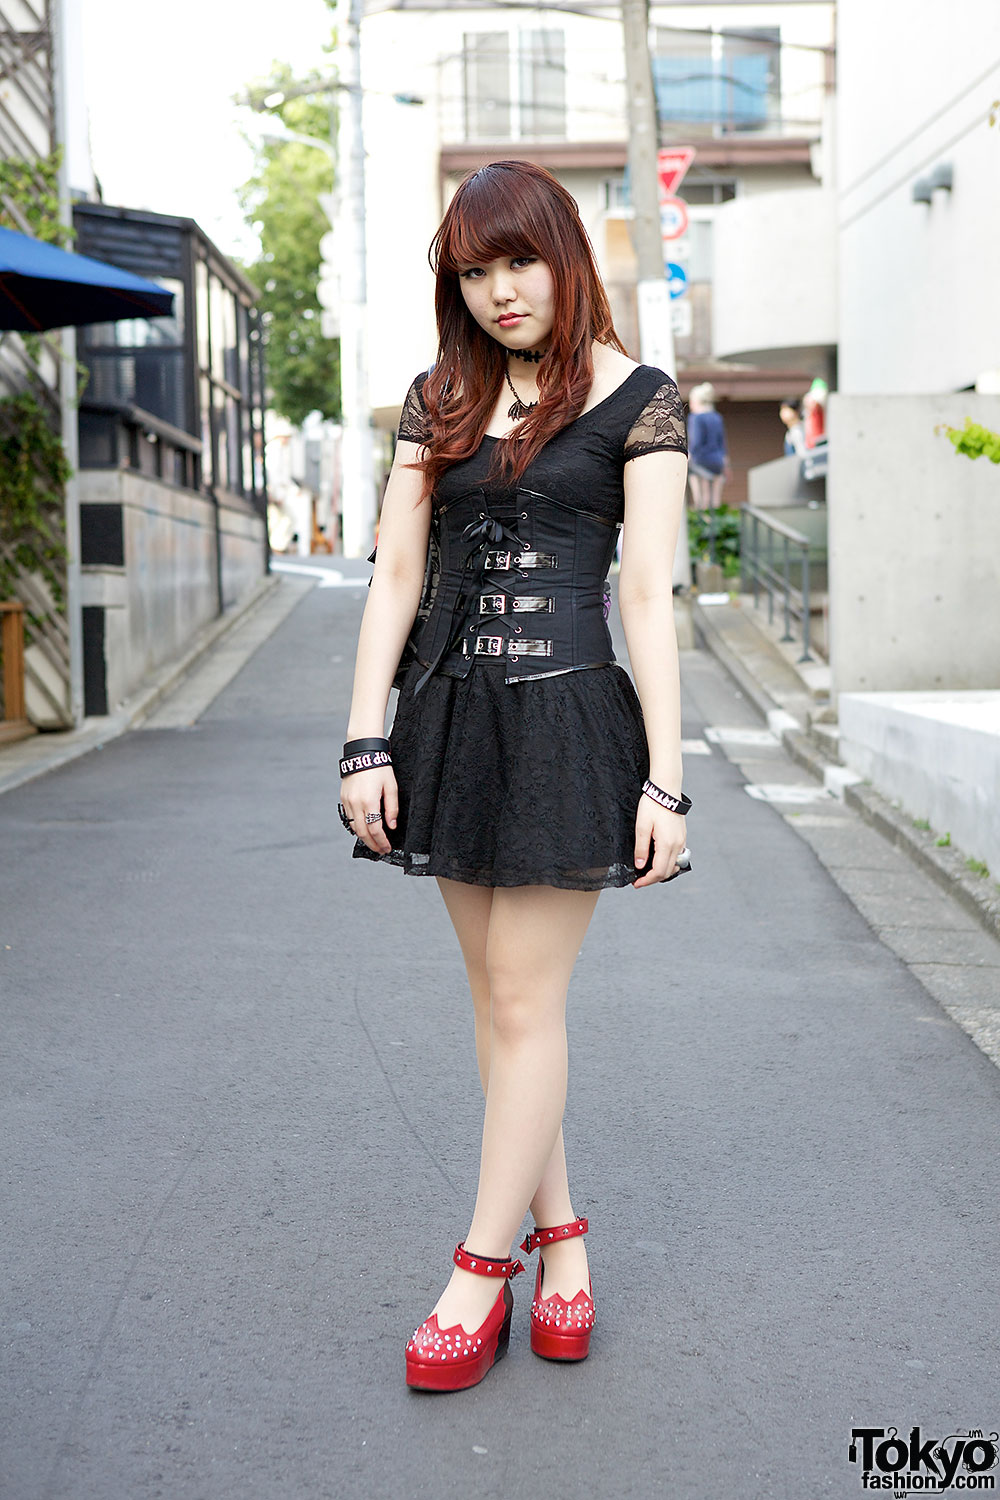 Harajuku Rock Girl Style W Black Lace Corset Listen Flavor Iron Fist